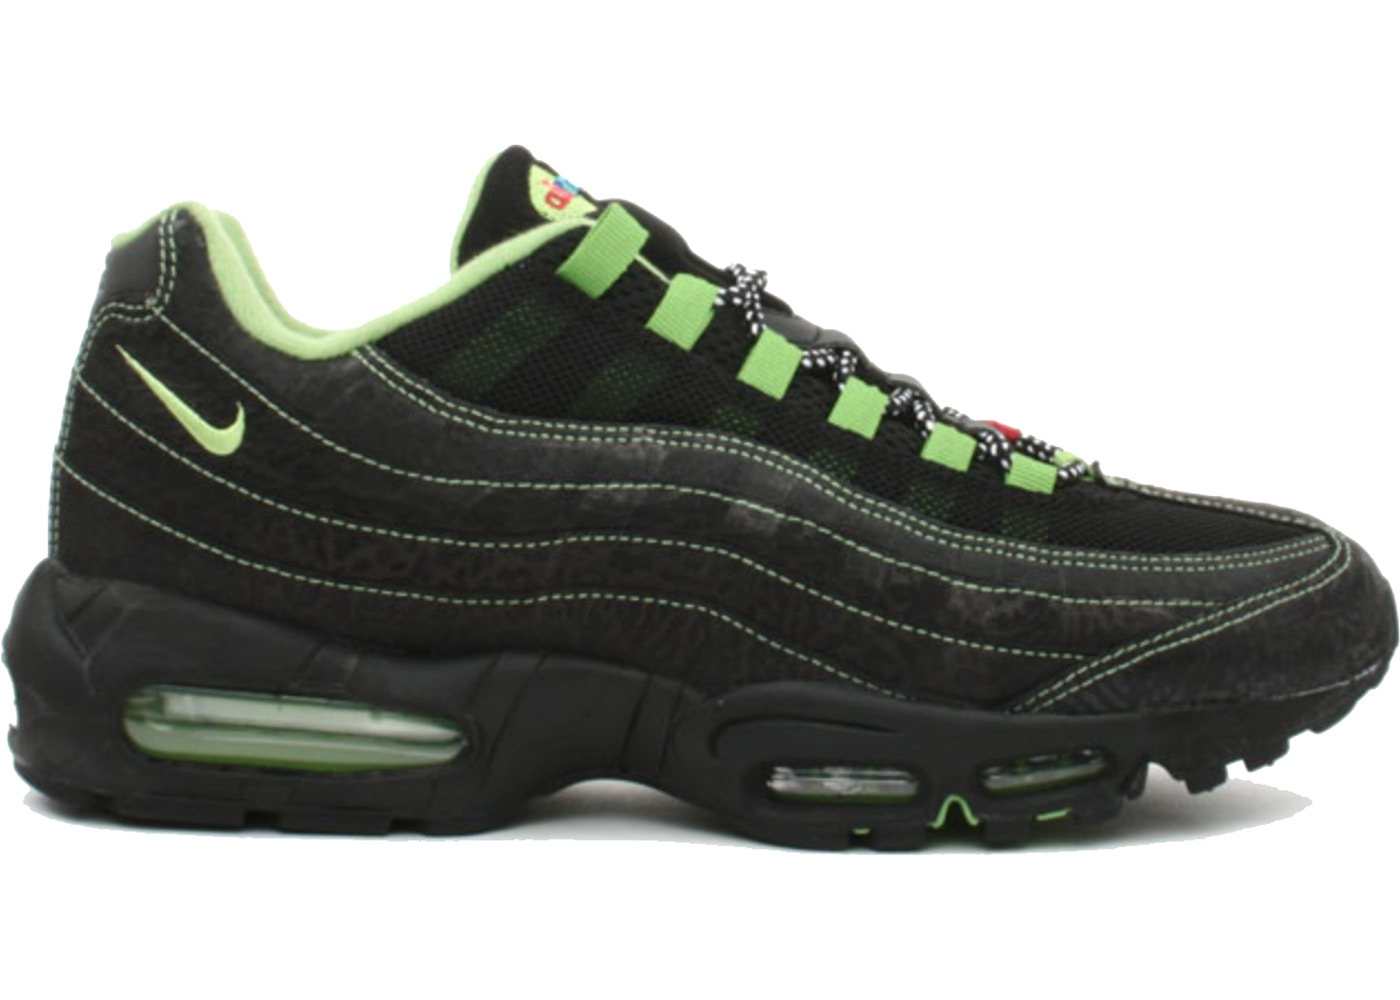 Air Max 95 Sole Collector Cowboy Special - 341350-031 72a9d1e30